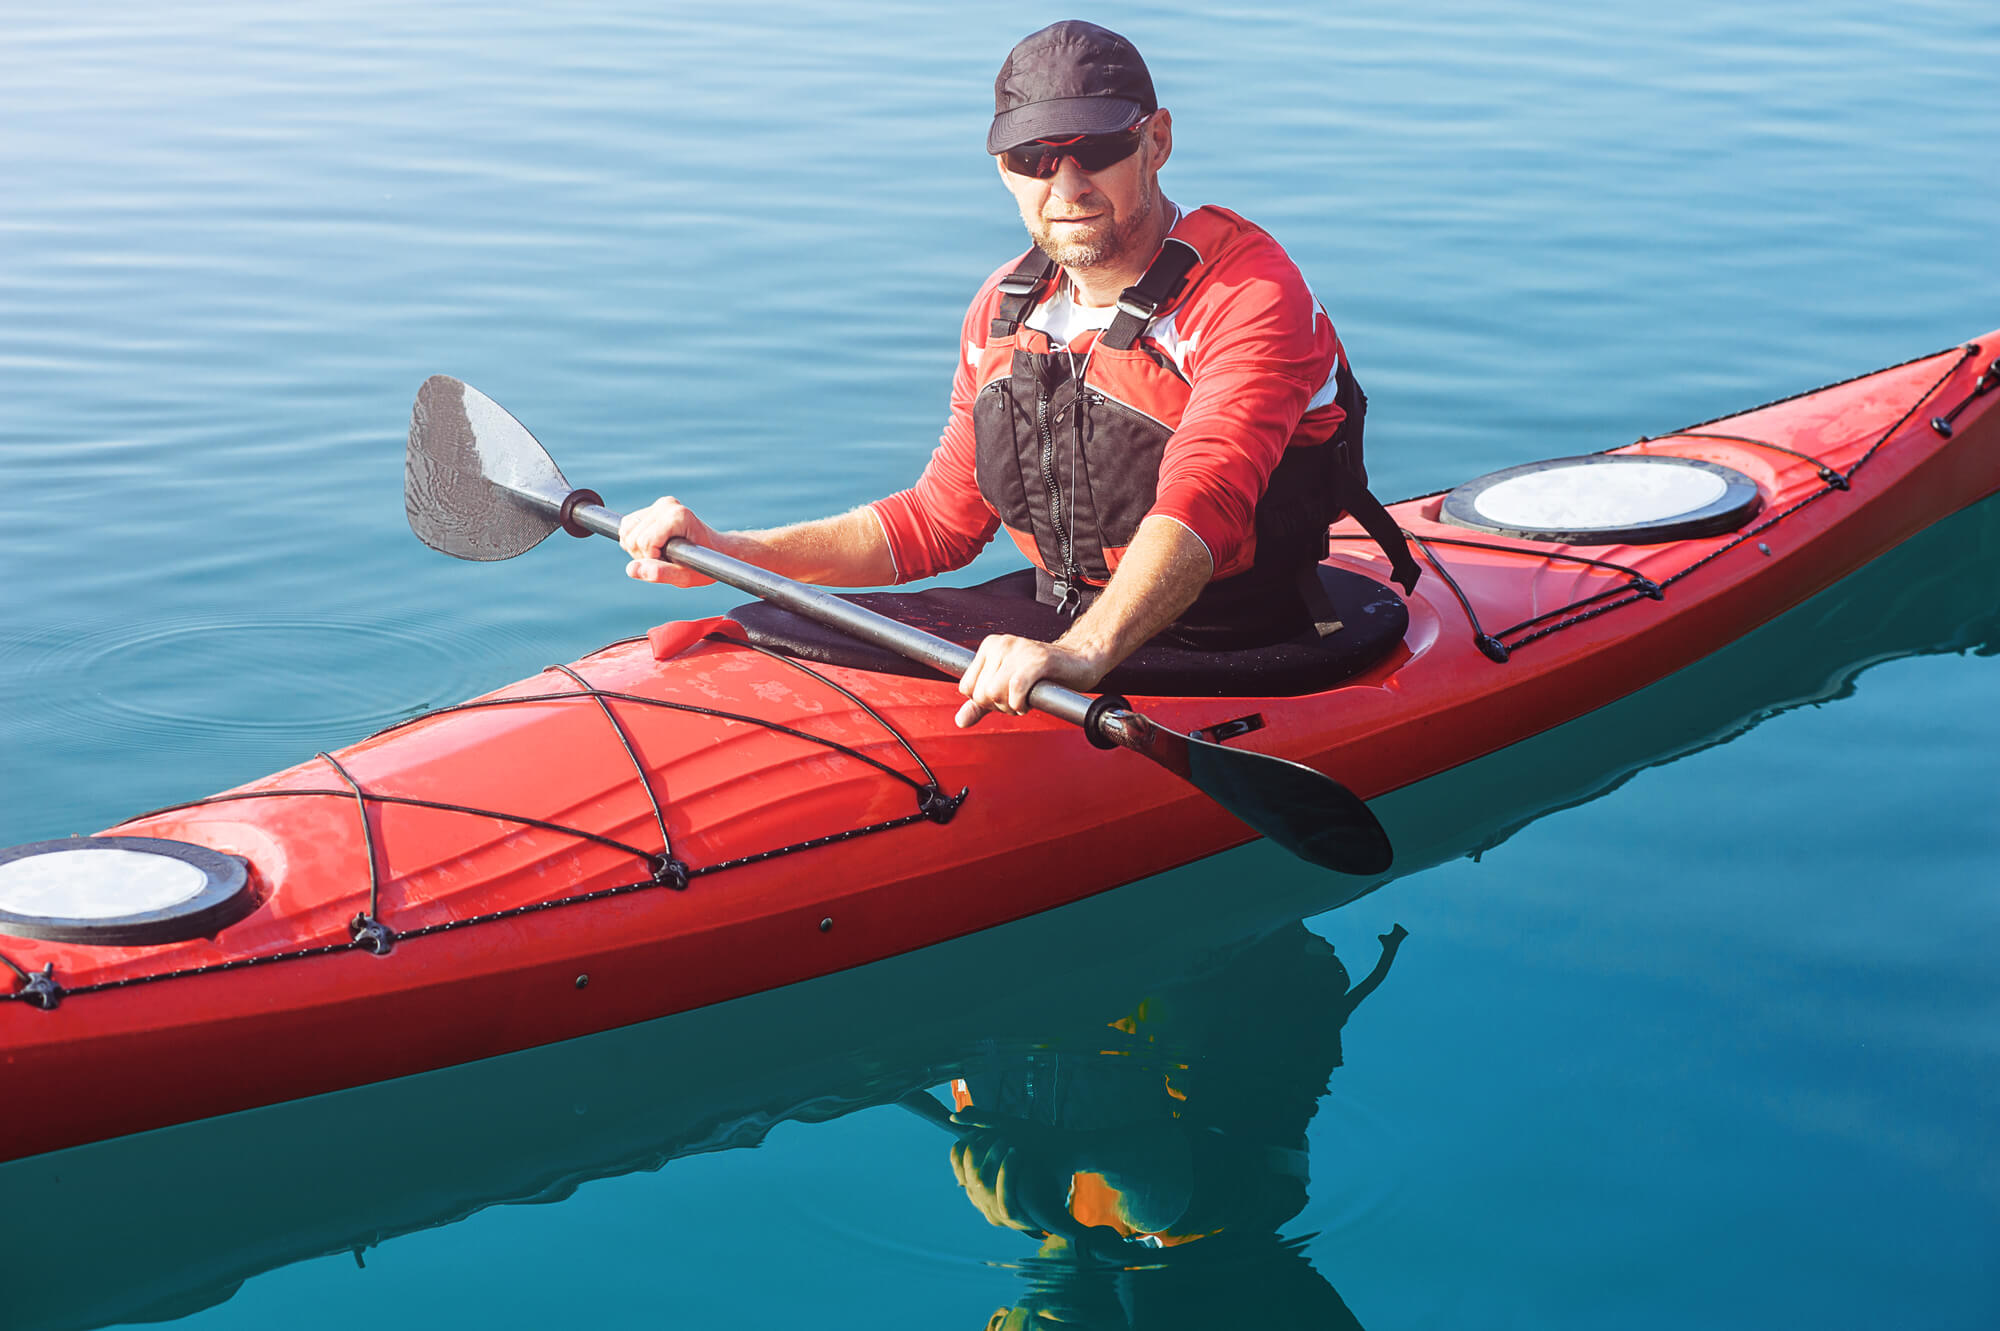 Kayak Canoe Vs Kayak What Are The Differences Pros Cons Speed